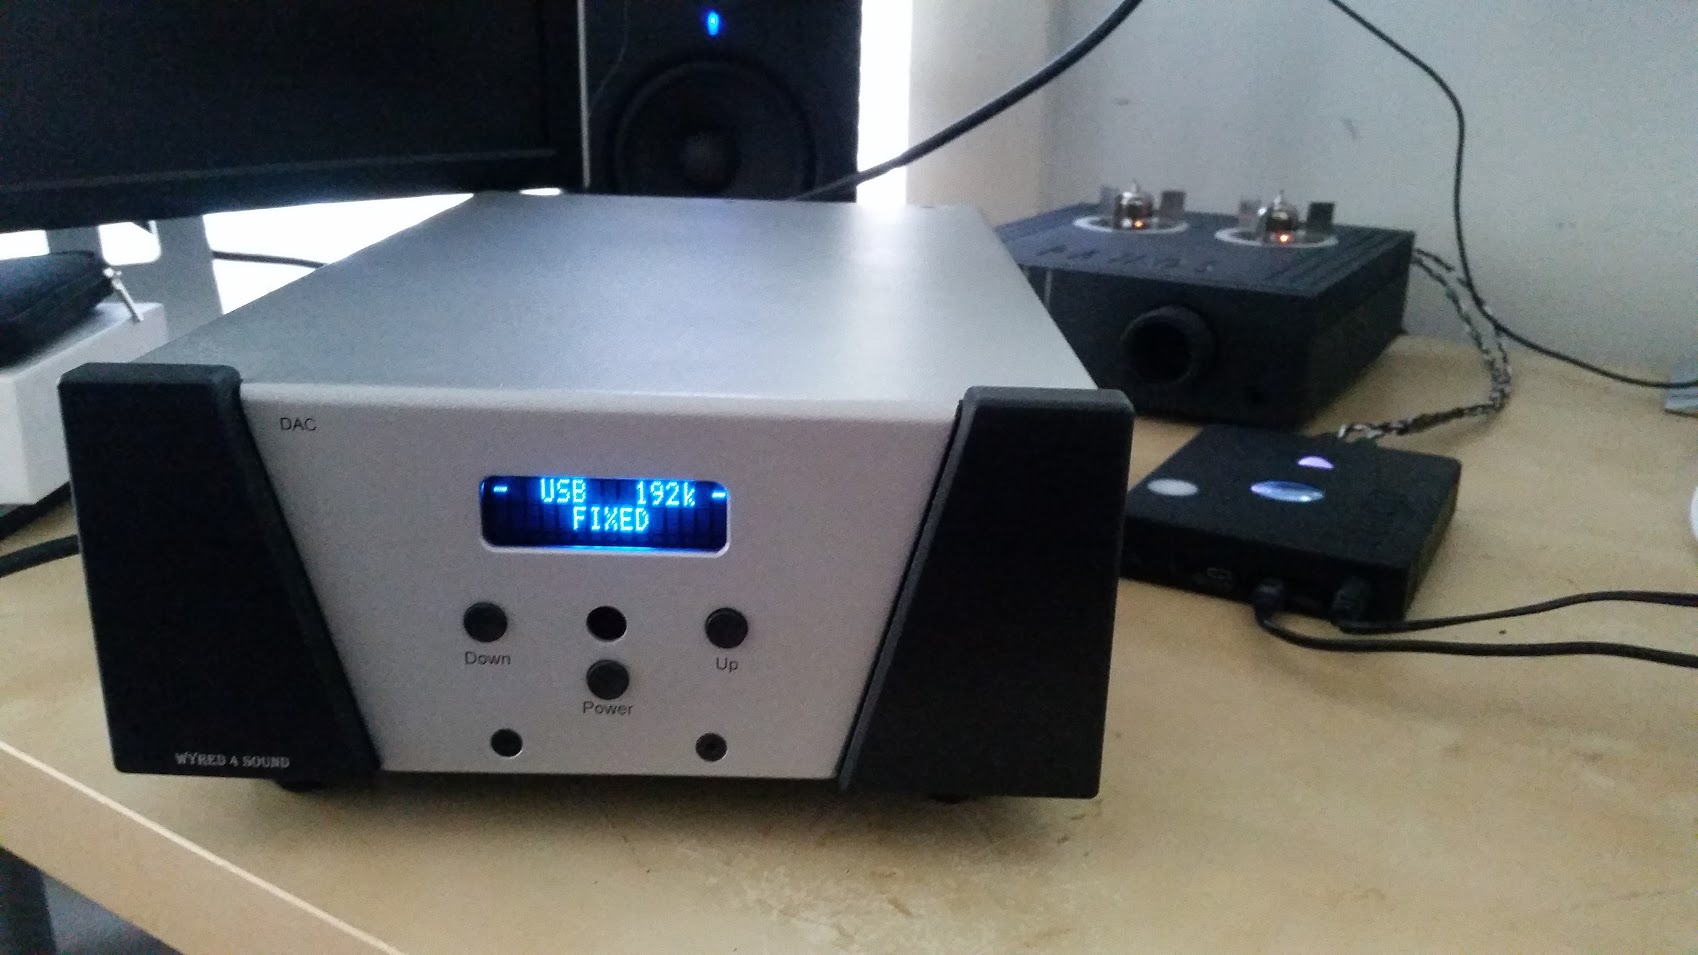 DAC Review: Wyred 4 Sound DAC-2